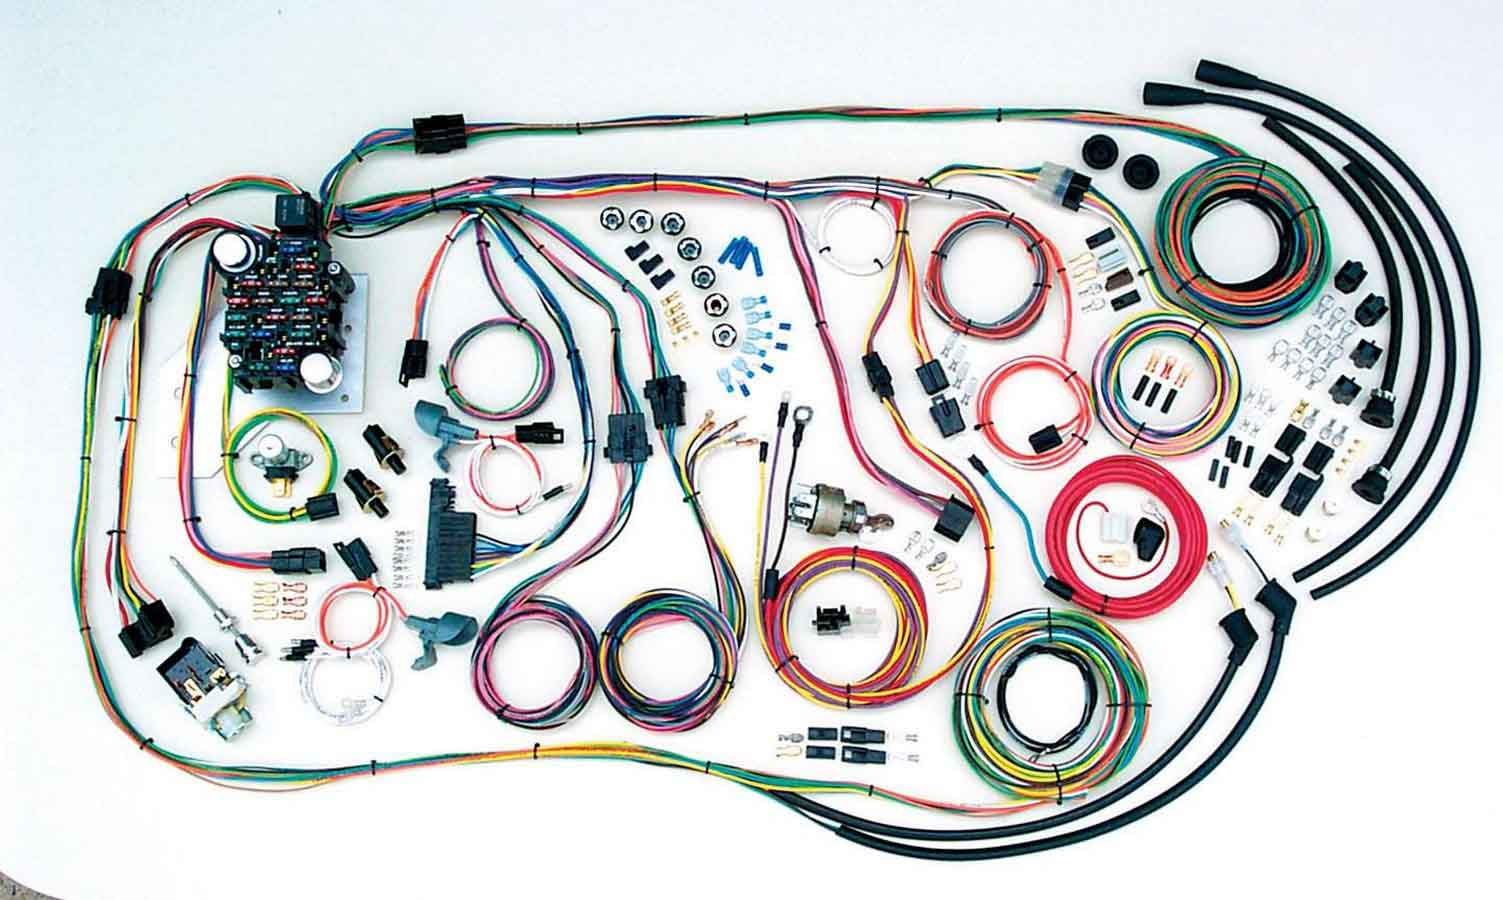 hight resolution of 55 59 chevy truck wiring harness